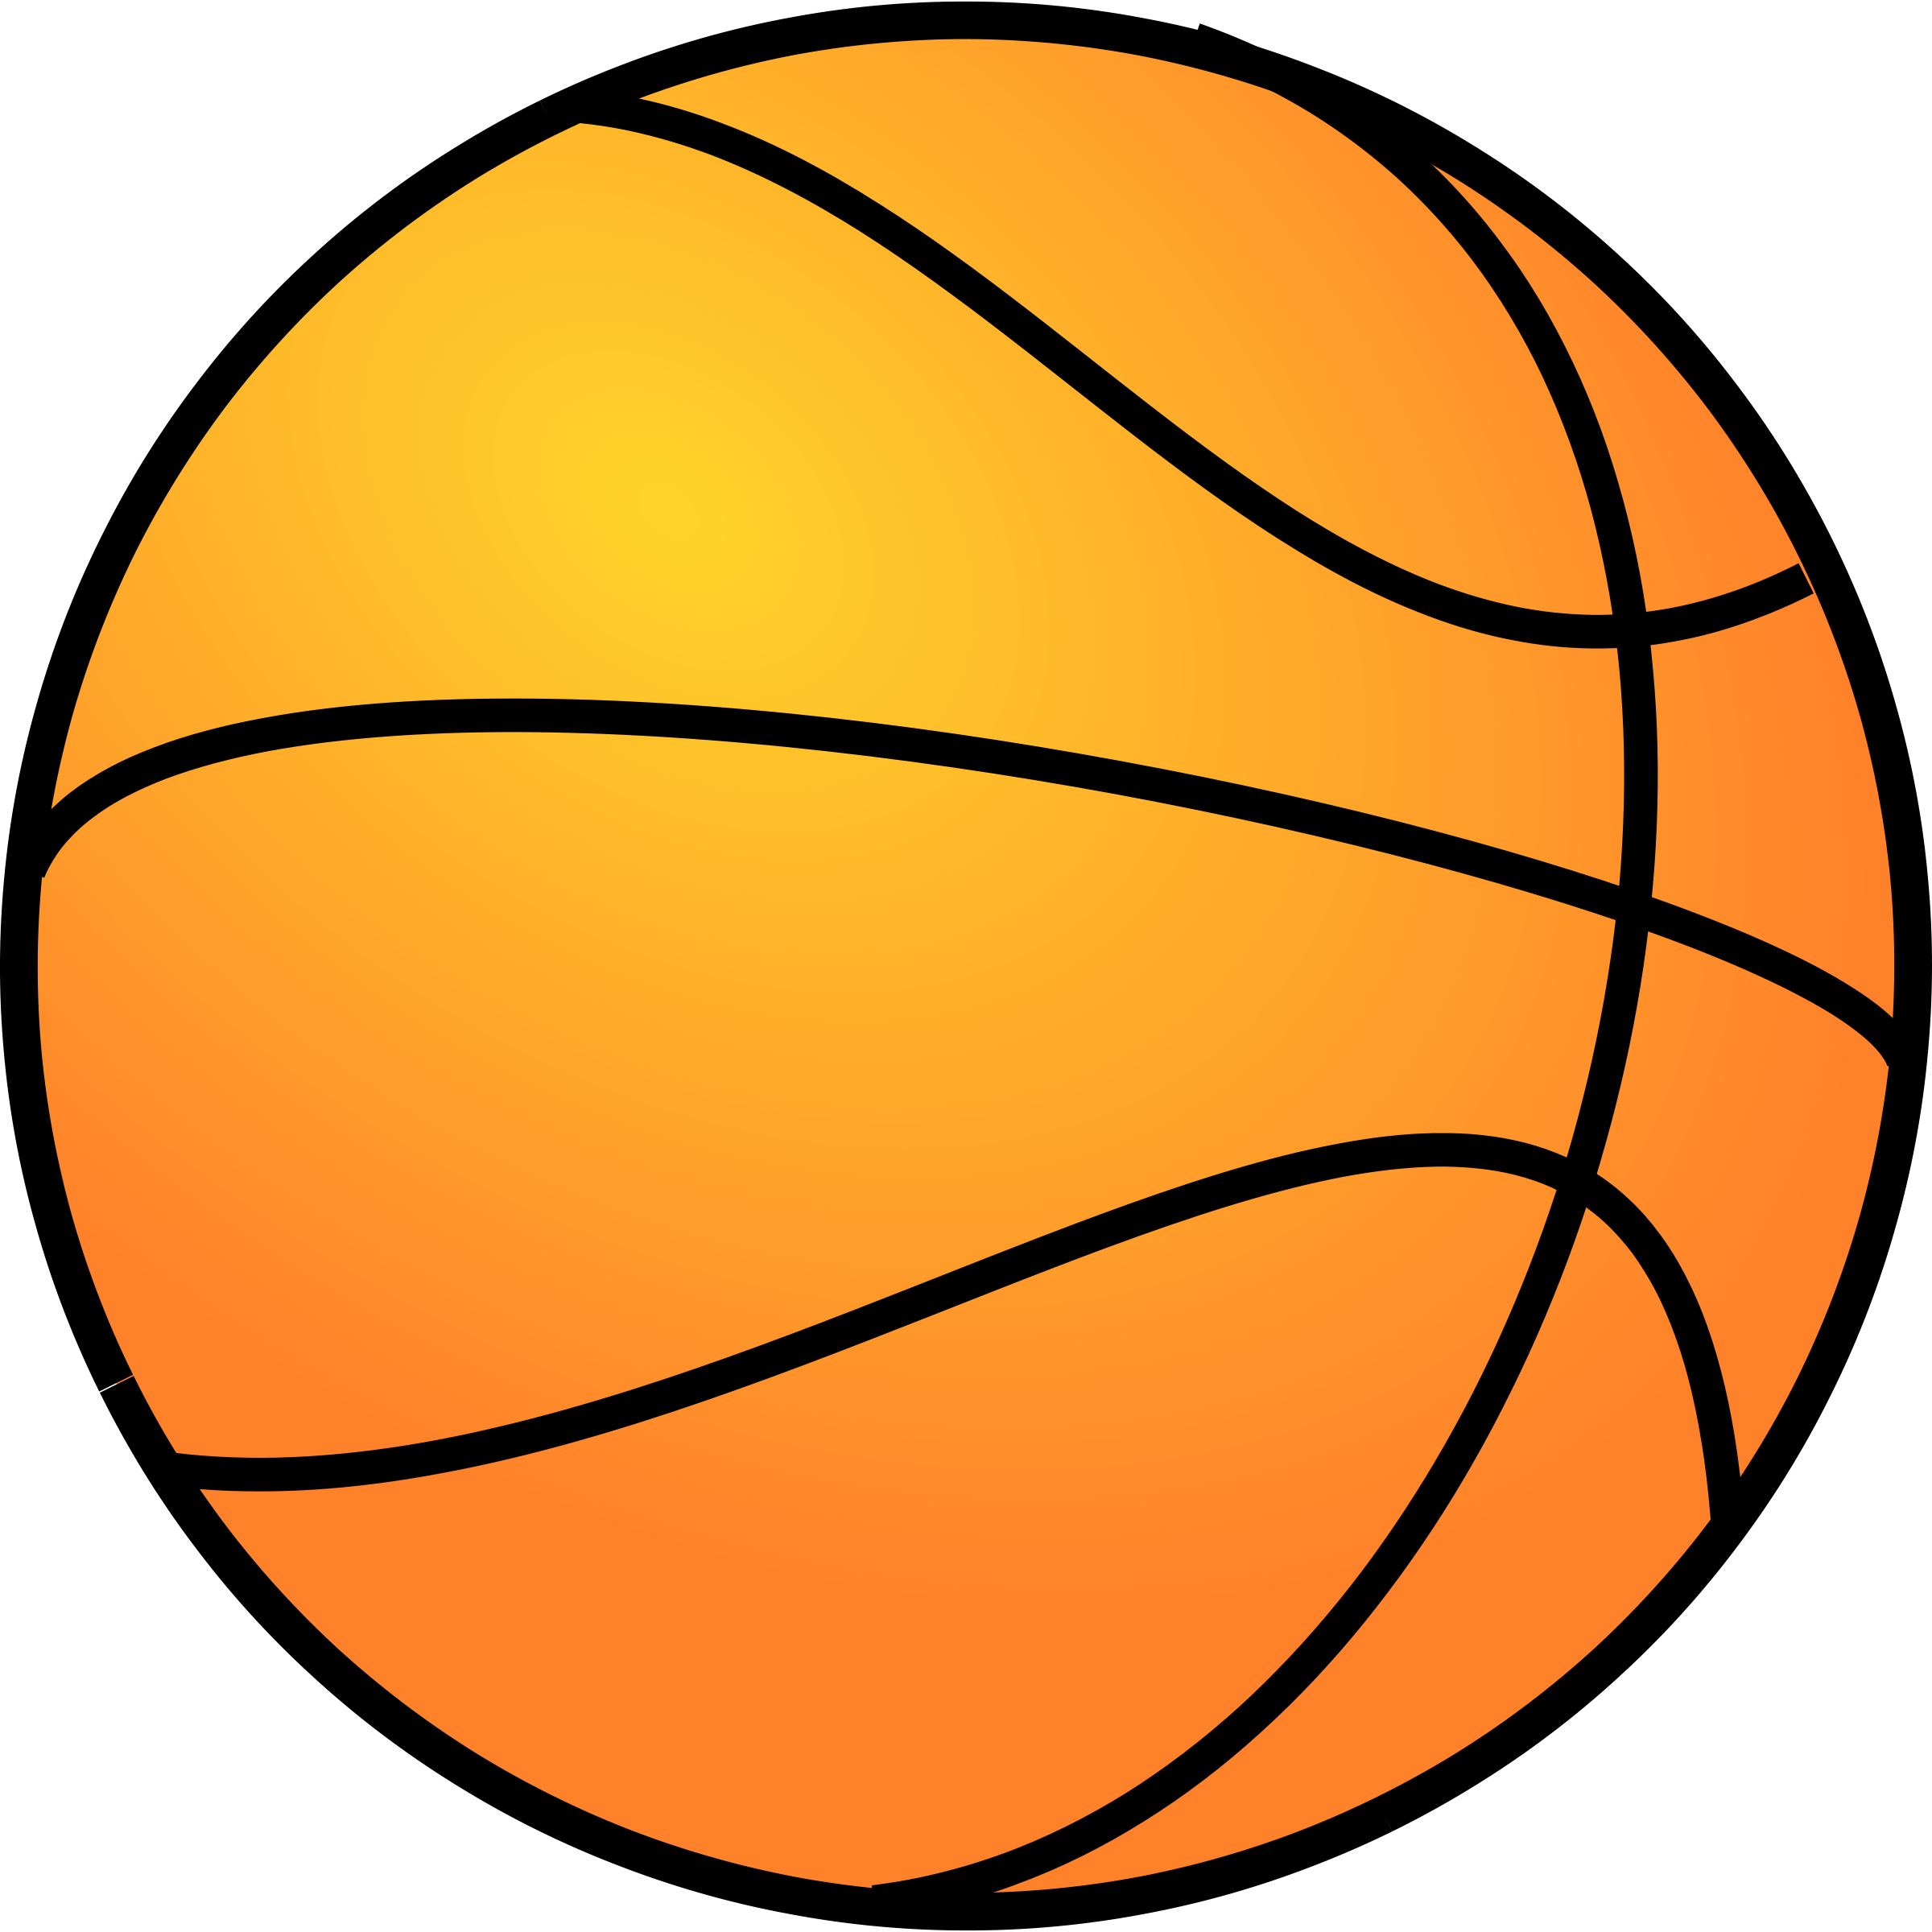 Basketball Cliparts - Cliparts Zone clip art library stock